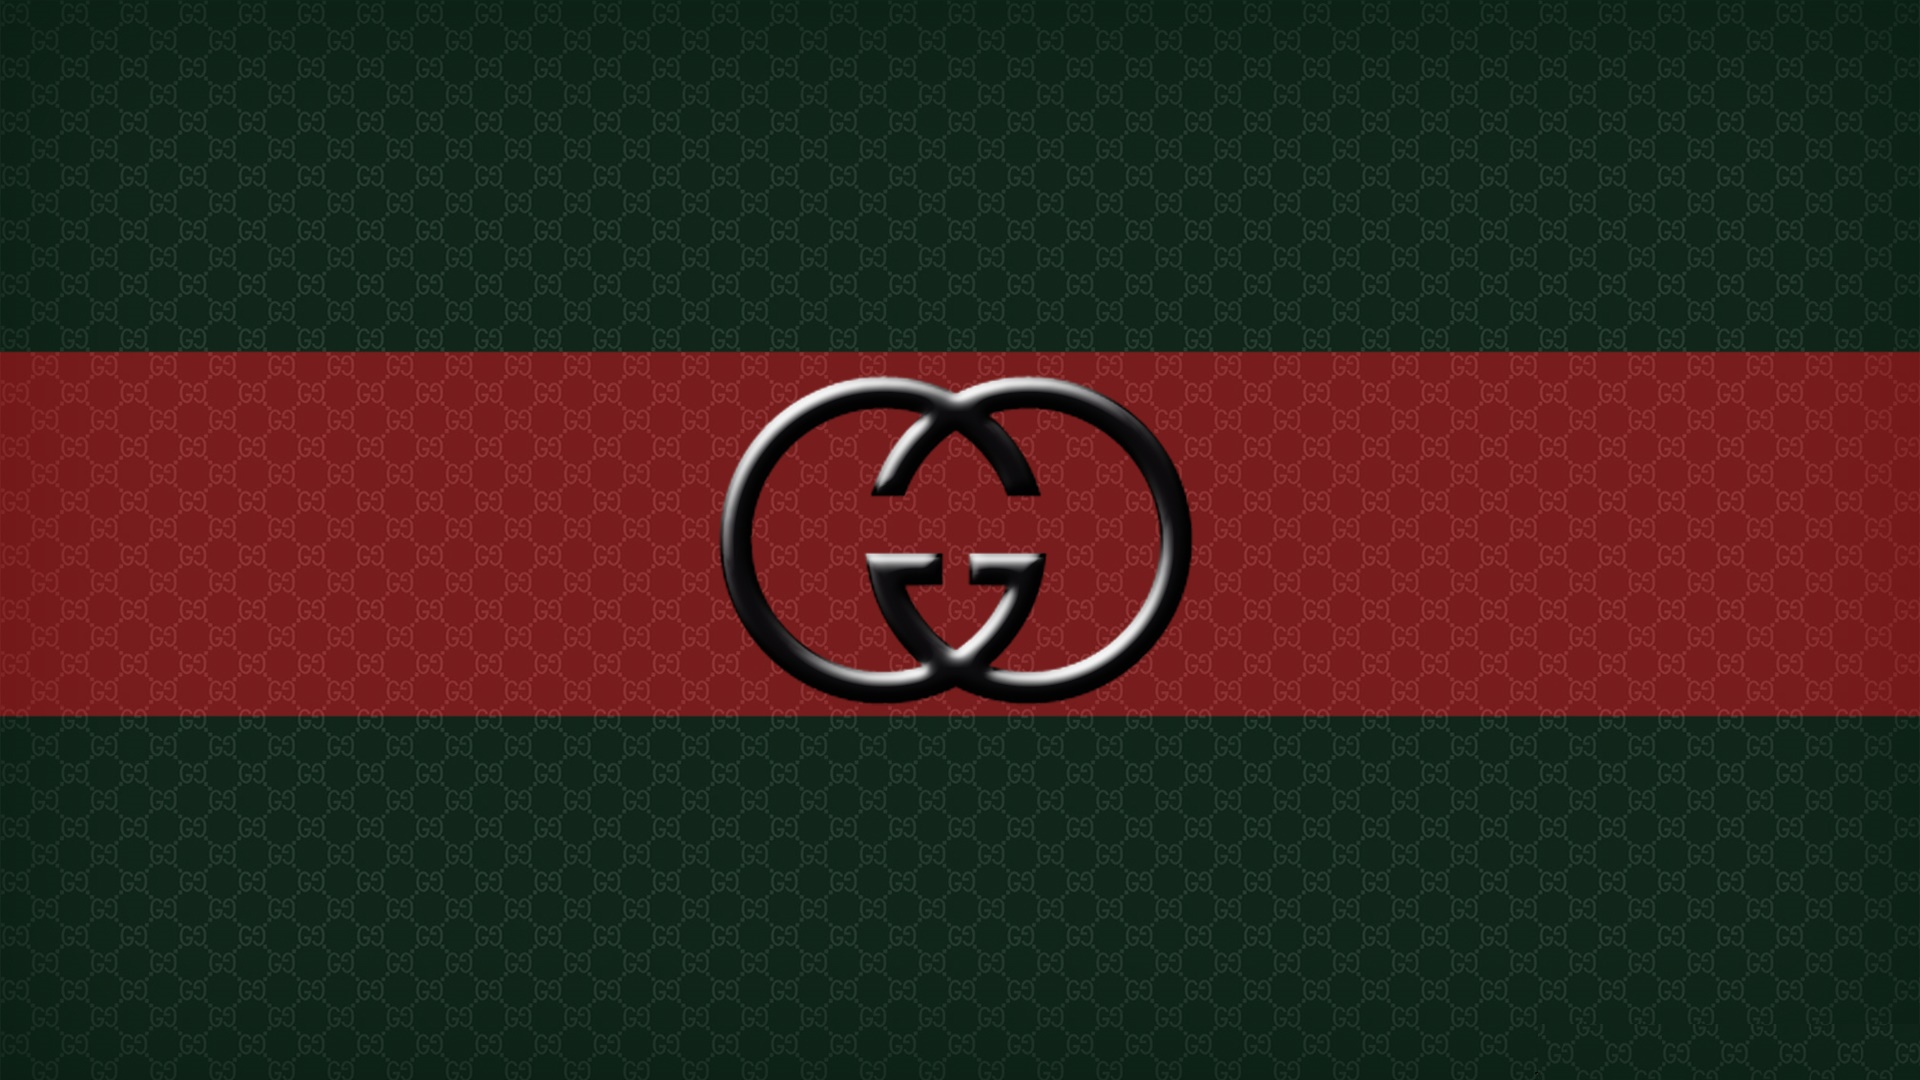 Happy Easter Wallpaper 3d Gucci Logo Wallpapers Hd Pixelstalk Net